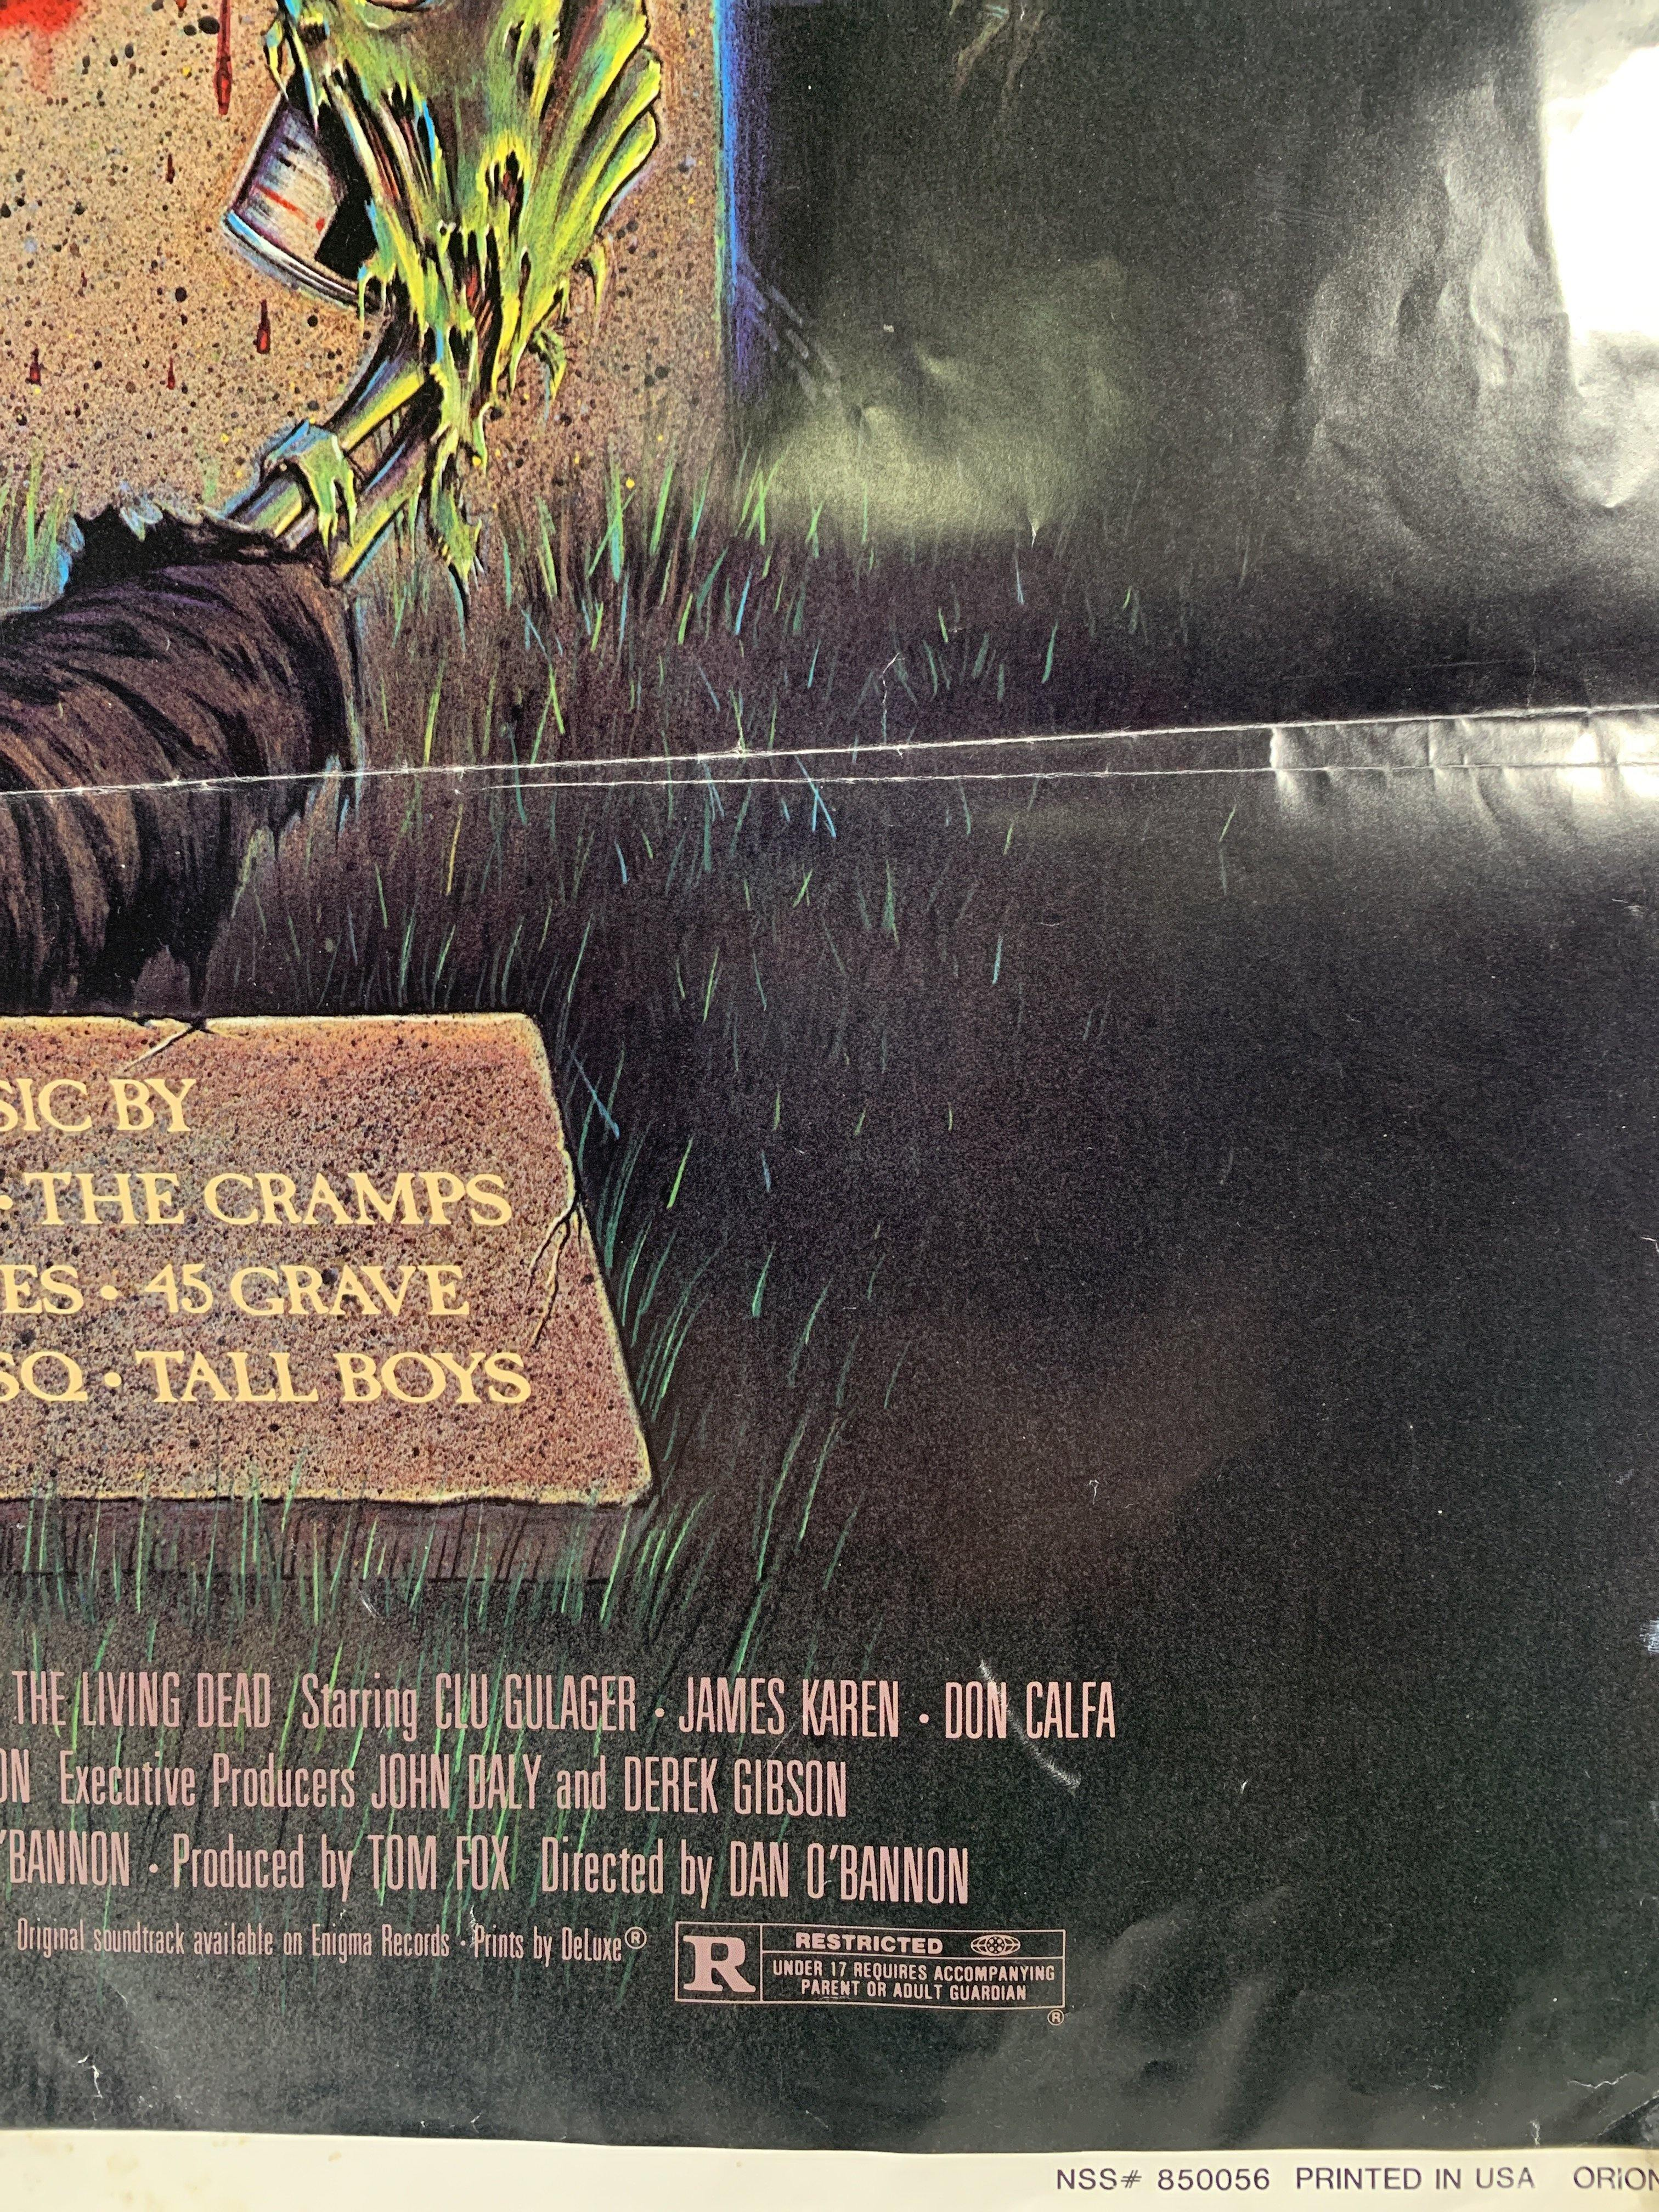 Vintage Original 1985 The Return Of The Living Dead Thorn One Sheet Poster Detail